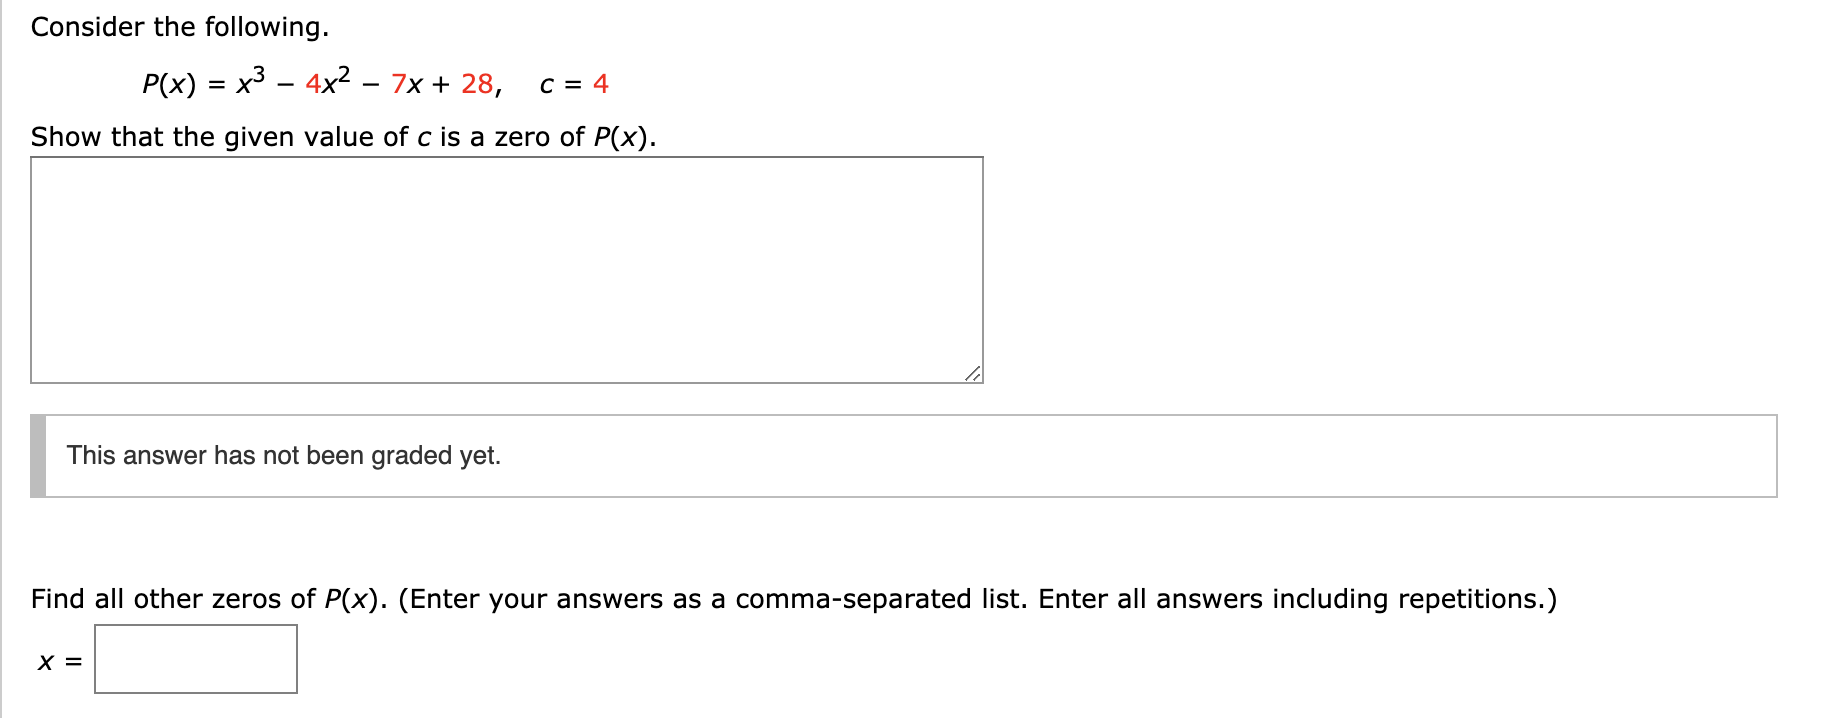 Consider the following. x3 - 4x2 7x 28, Р(x) C = 4 Show that the given value of c is a zero of P(x). This answer has not been graded yet. Find all other zeros of P(x). (Enter your answers as a comma-separated list. Enter all answers including repetitions.) х%3